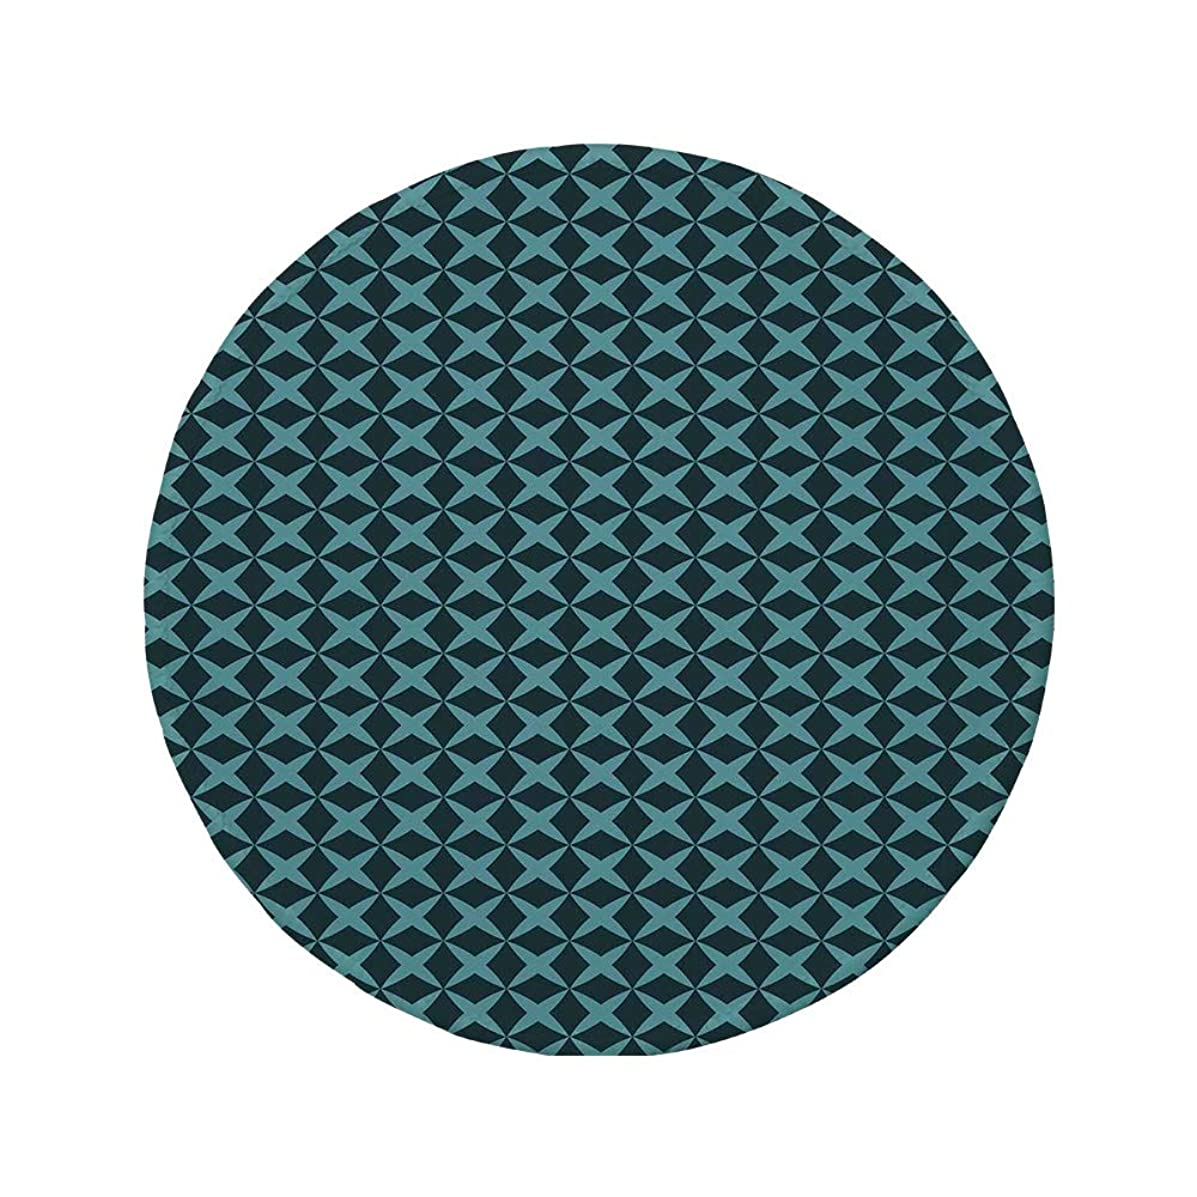 Non-Slip Rubber Round Mouse Pad,Blue,Wire Inspired Floral Like Image Thick Crossed Horizontal Lines Image Decorative,Slate Blue and Light Blue,7.87